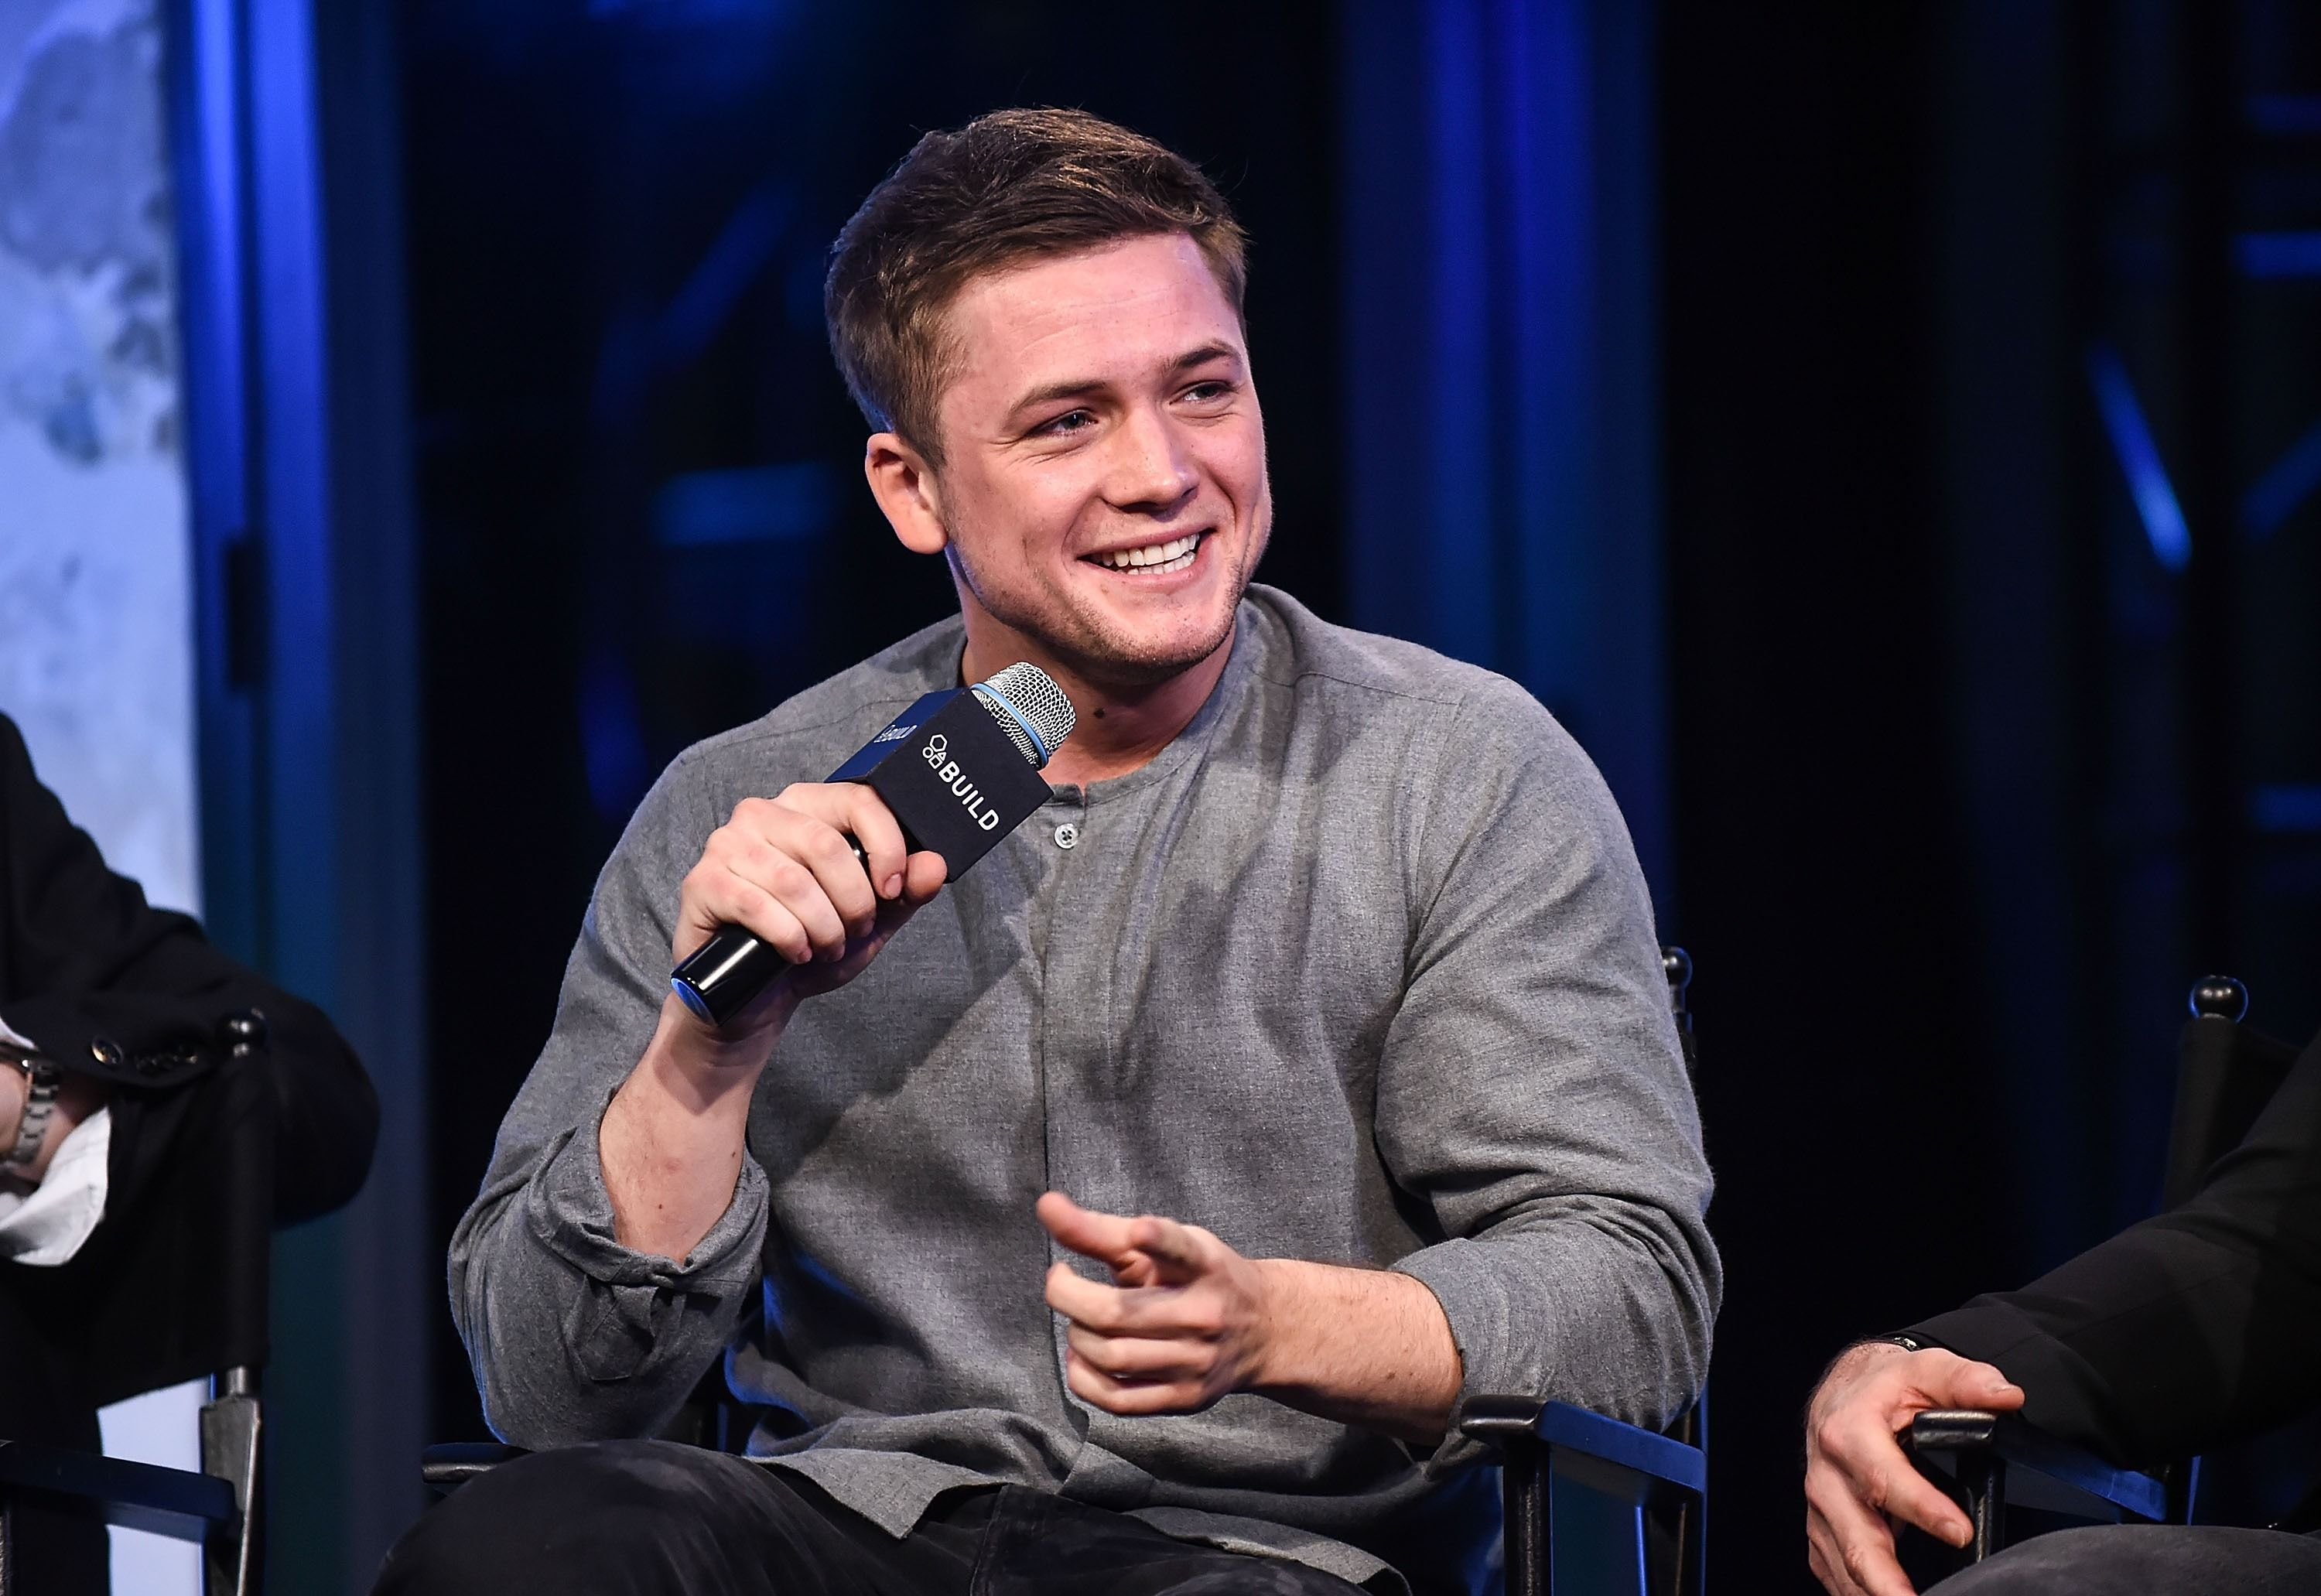 Elton John biopic: Taron Egerton to play the iconic singer in Rocketman